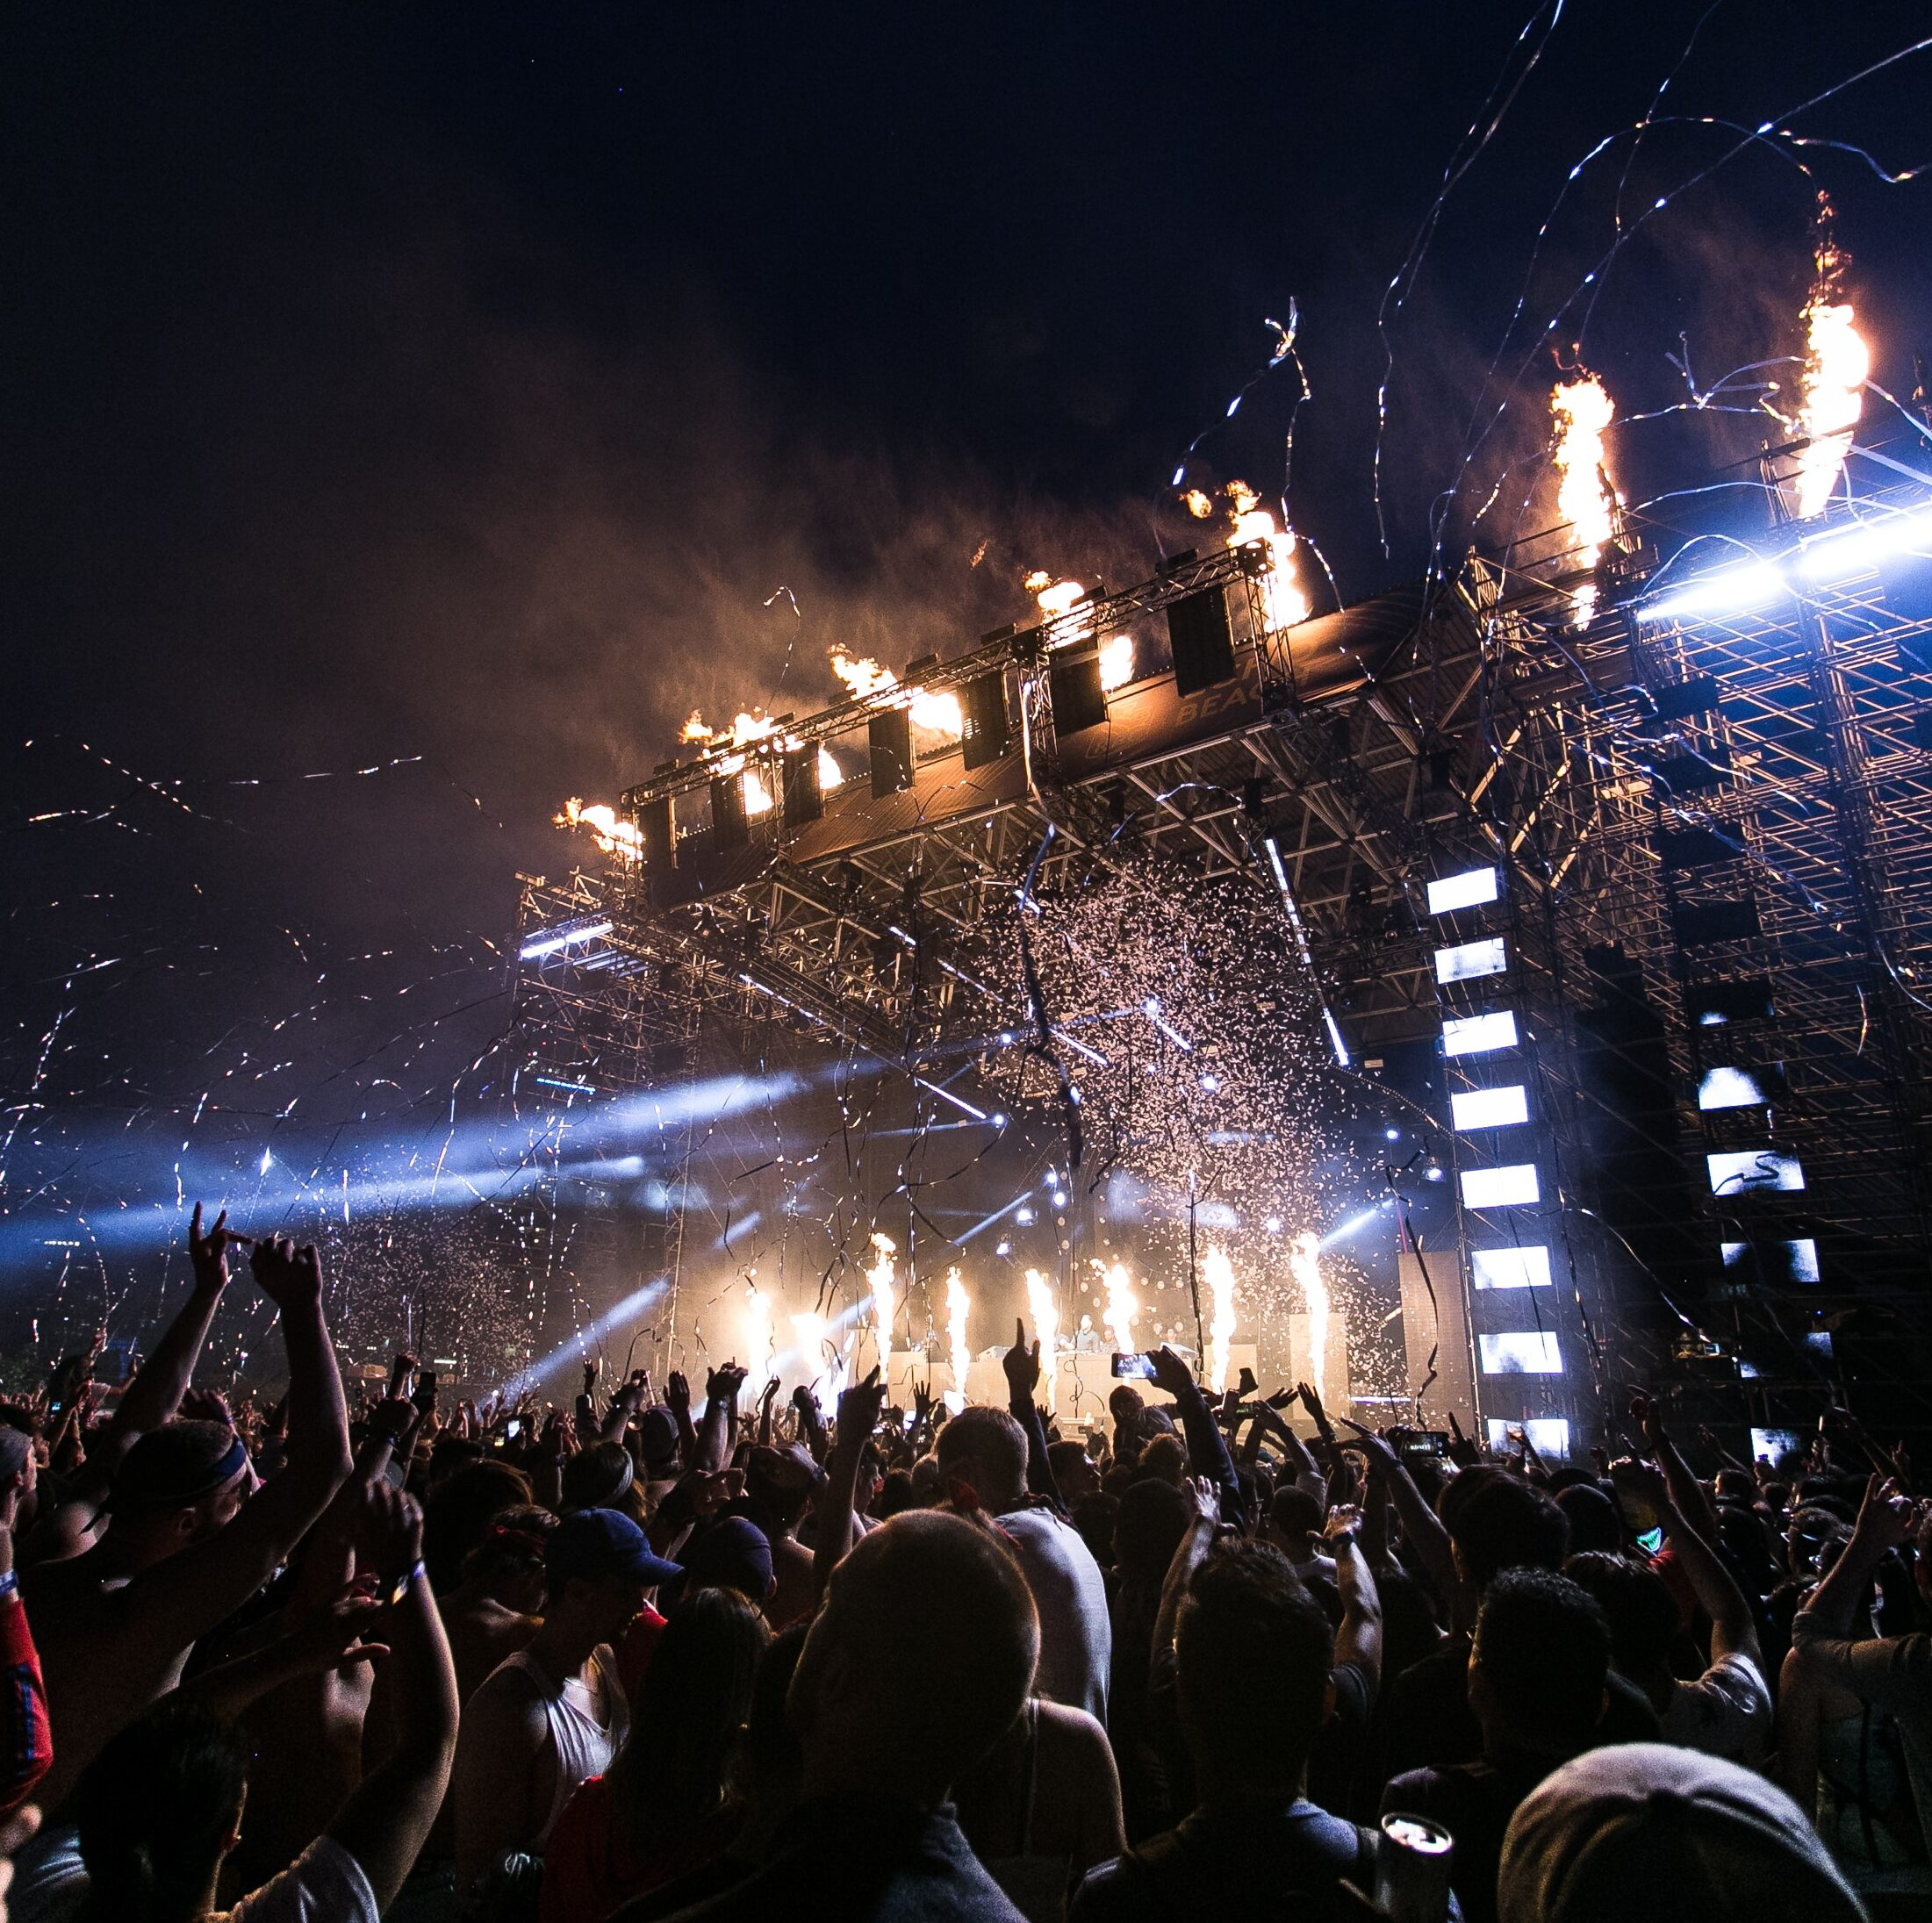 A crowd of people at a concert with flashing lights